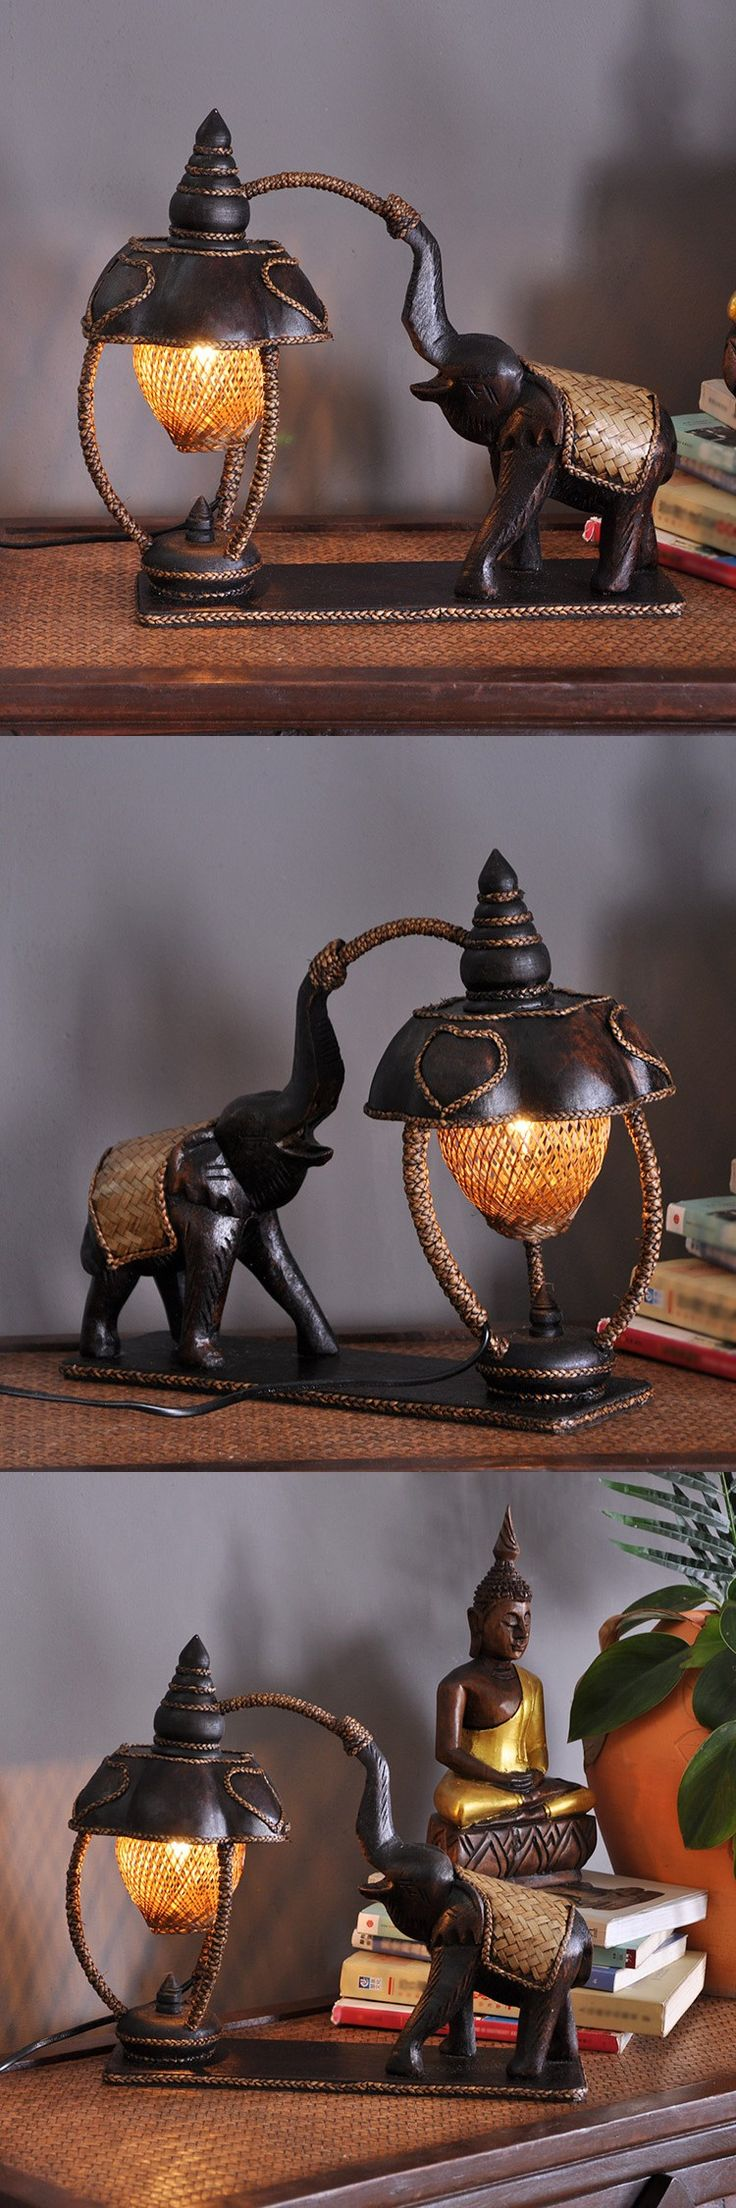 Desk Lamps Indoor Lighting Southeast Asian Elephant Bamboo Lamp Decoration Home Furnishing Hotel Table Lamps $101.75